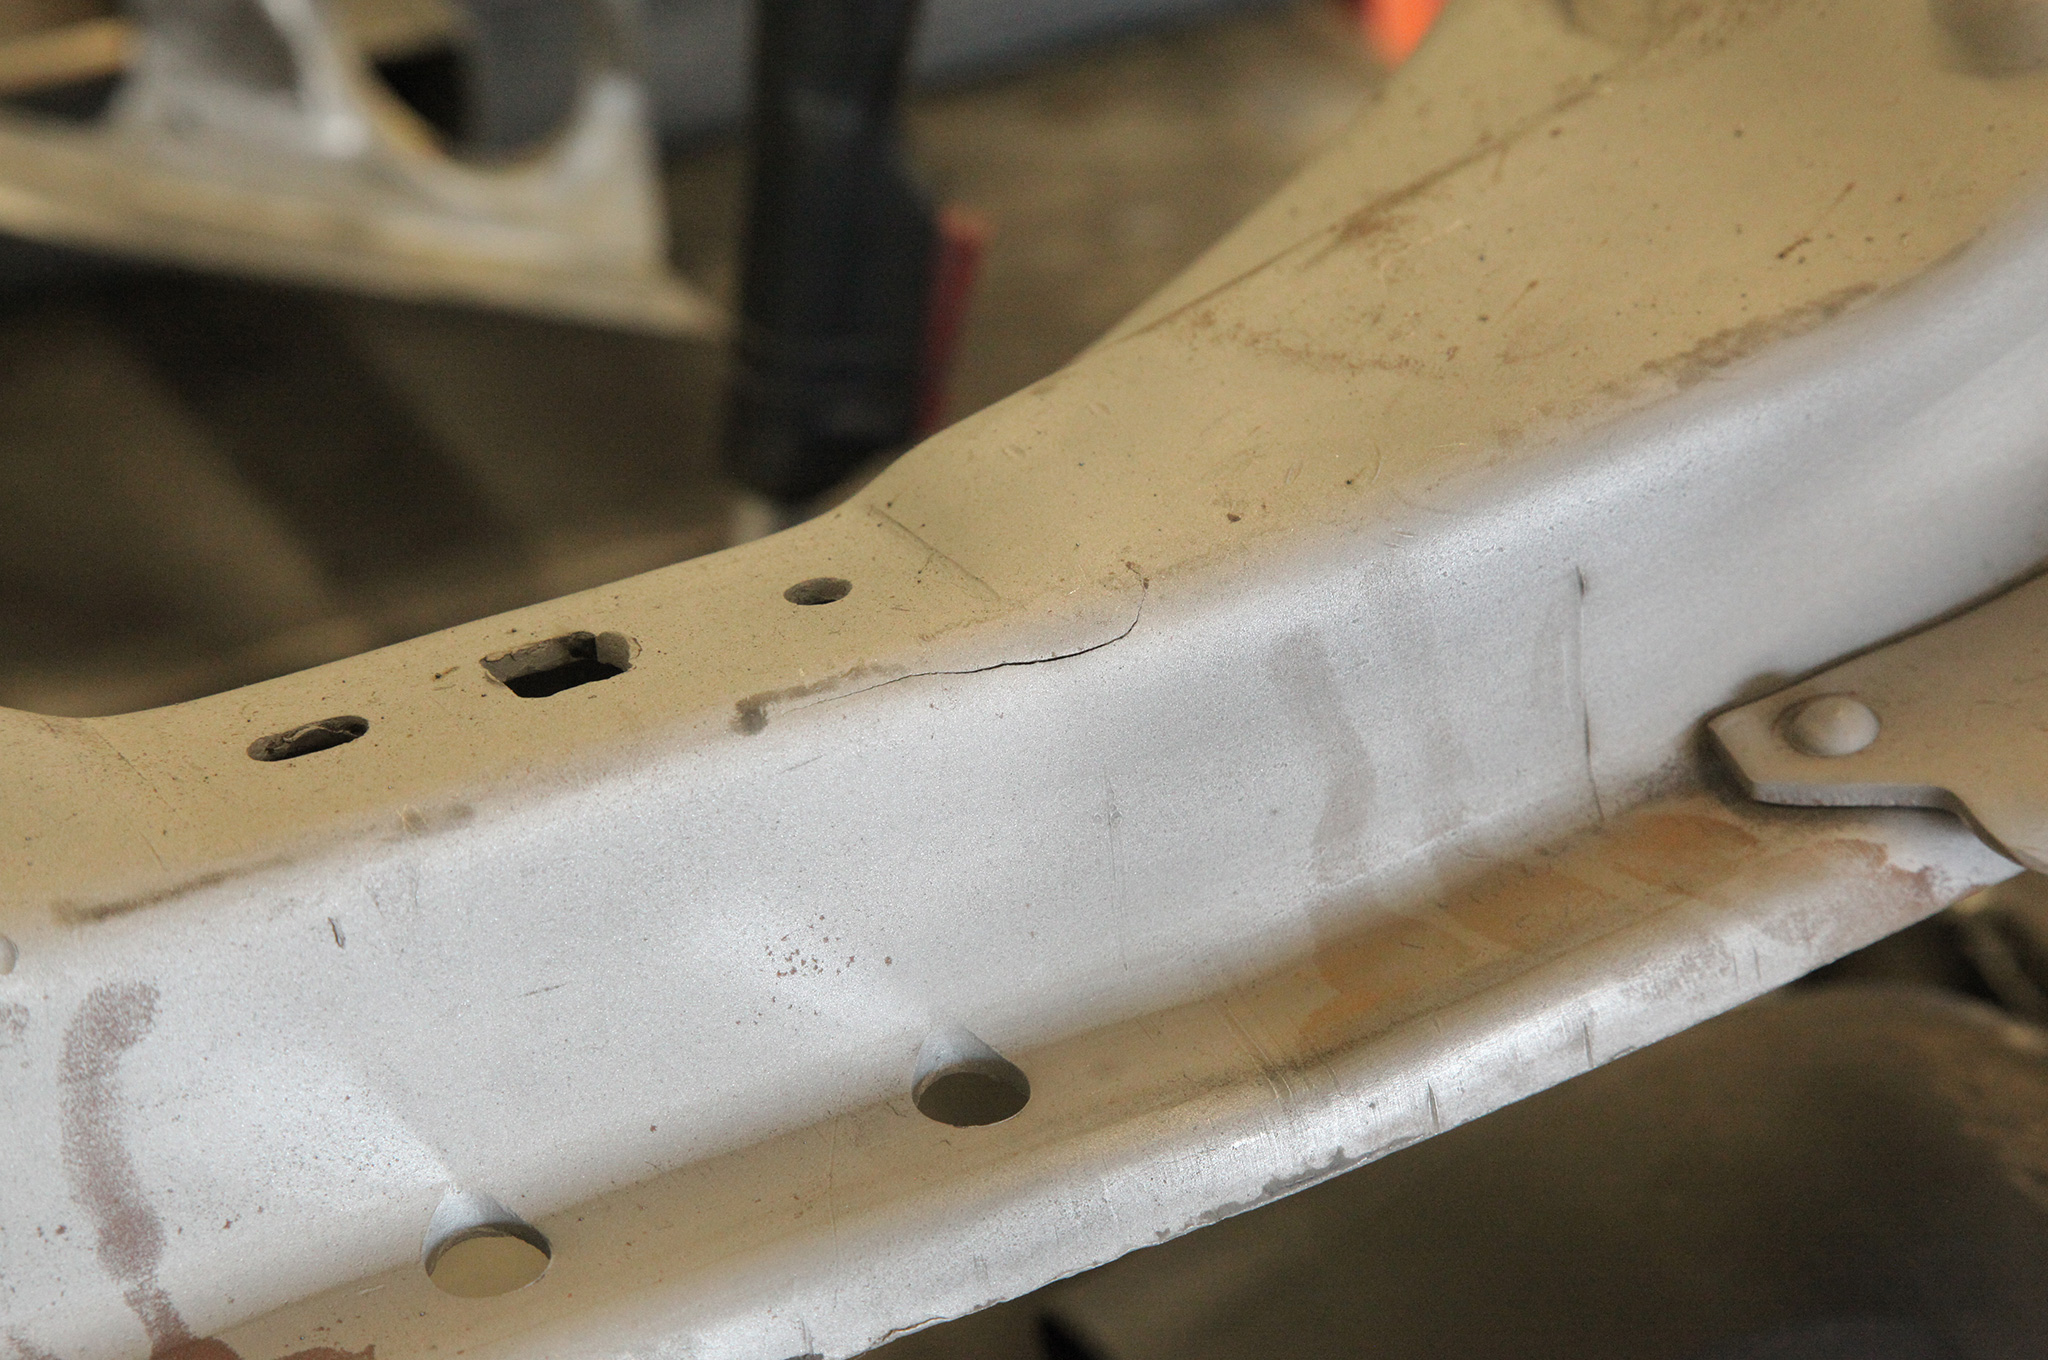 After blasting, a small crack was found in the front crossmember, which will be fixed with a TIG weld during the build process.